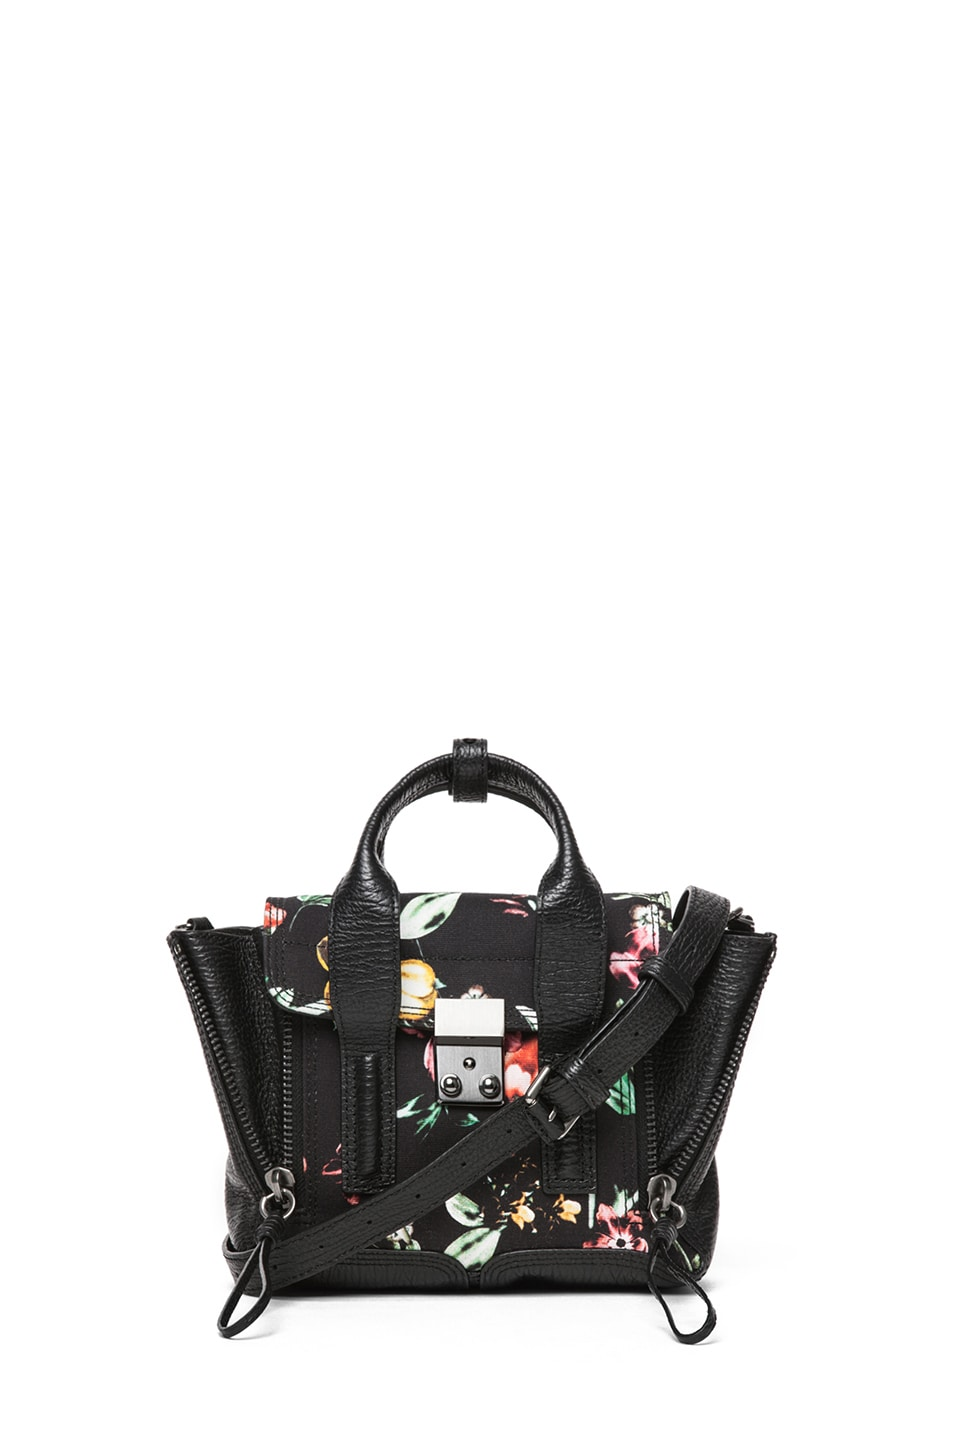 Image 1 of 3.1 phillip lim Mini Pashli Satchel Printed Canvas in Faded Botanical